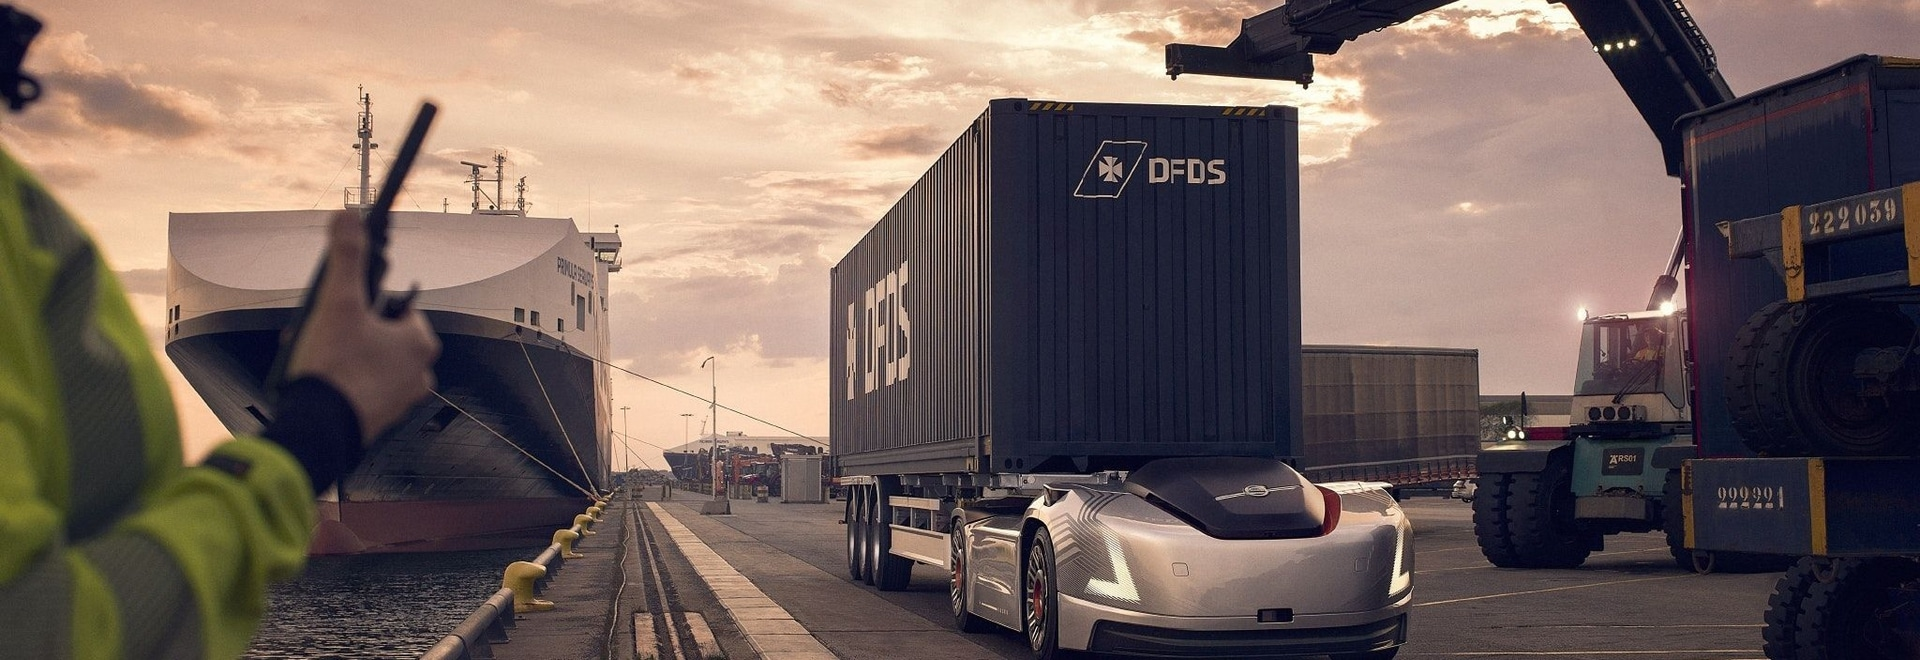 Volvo Trucks' autonomous and electric vehicle Vera is getting ready for a first assignment: the transportation of goods in a connected and repetitive flow from a DFDS' logistics centre to a port te...